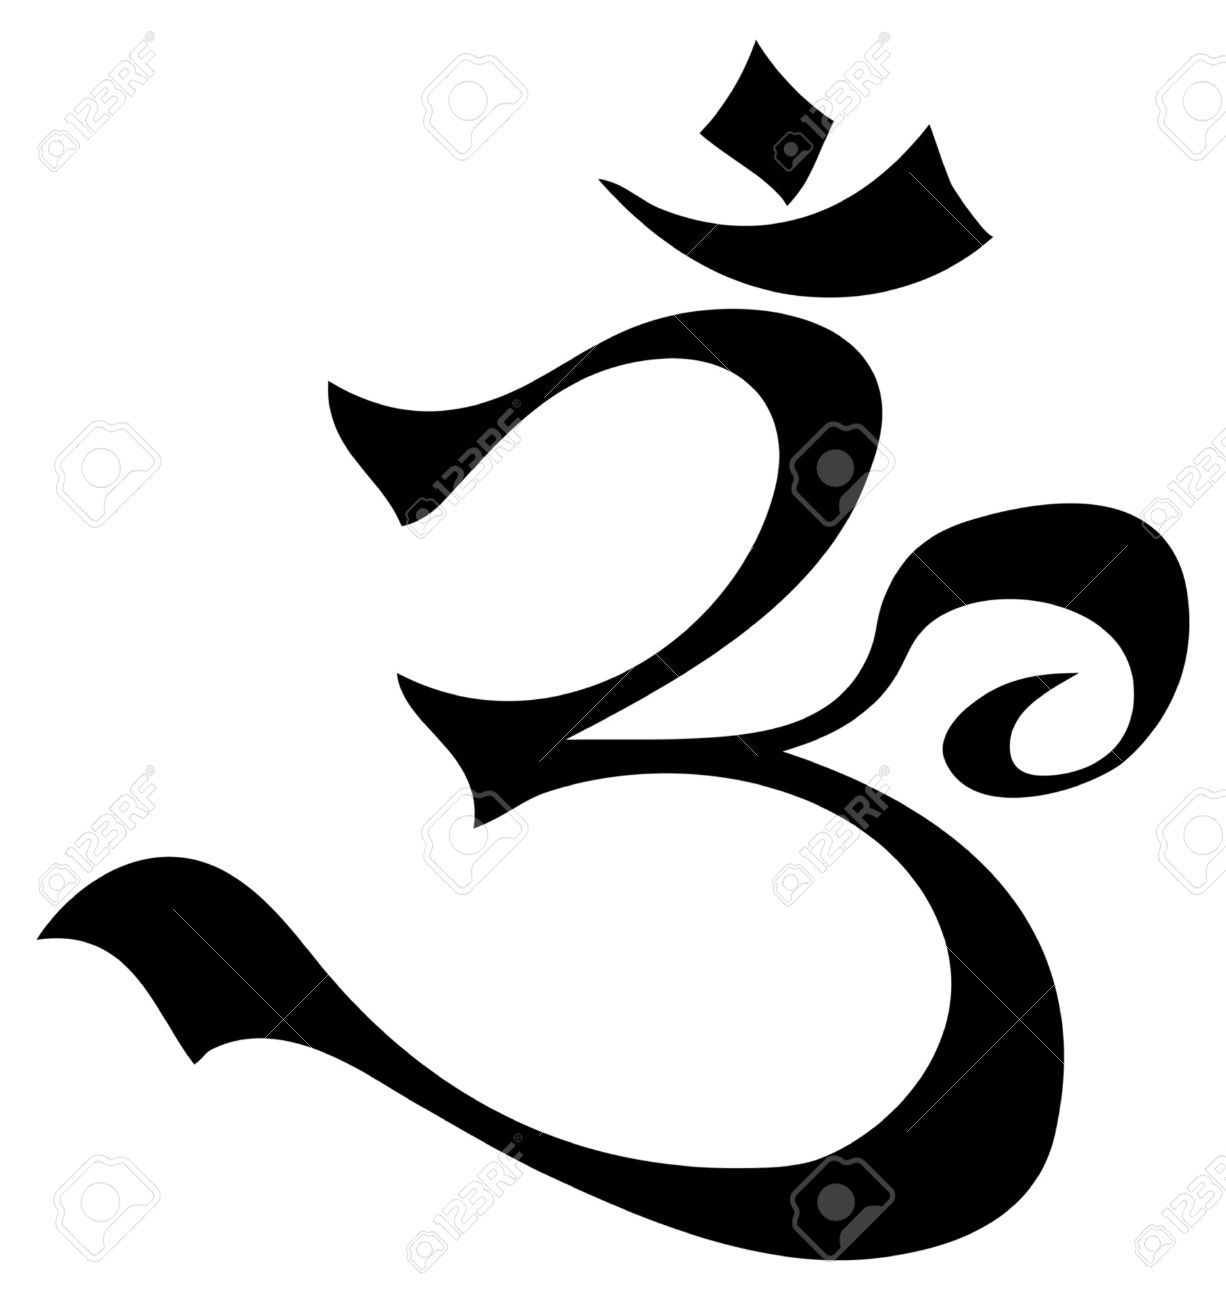 symbols for inner peace - Google Search | tattoos ...